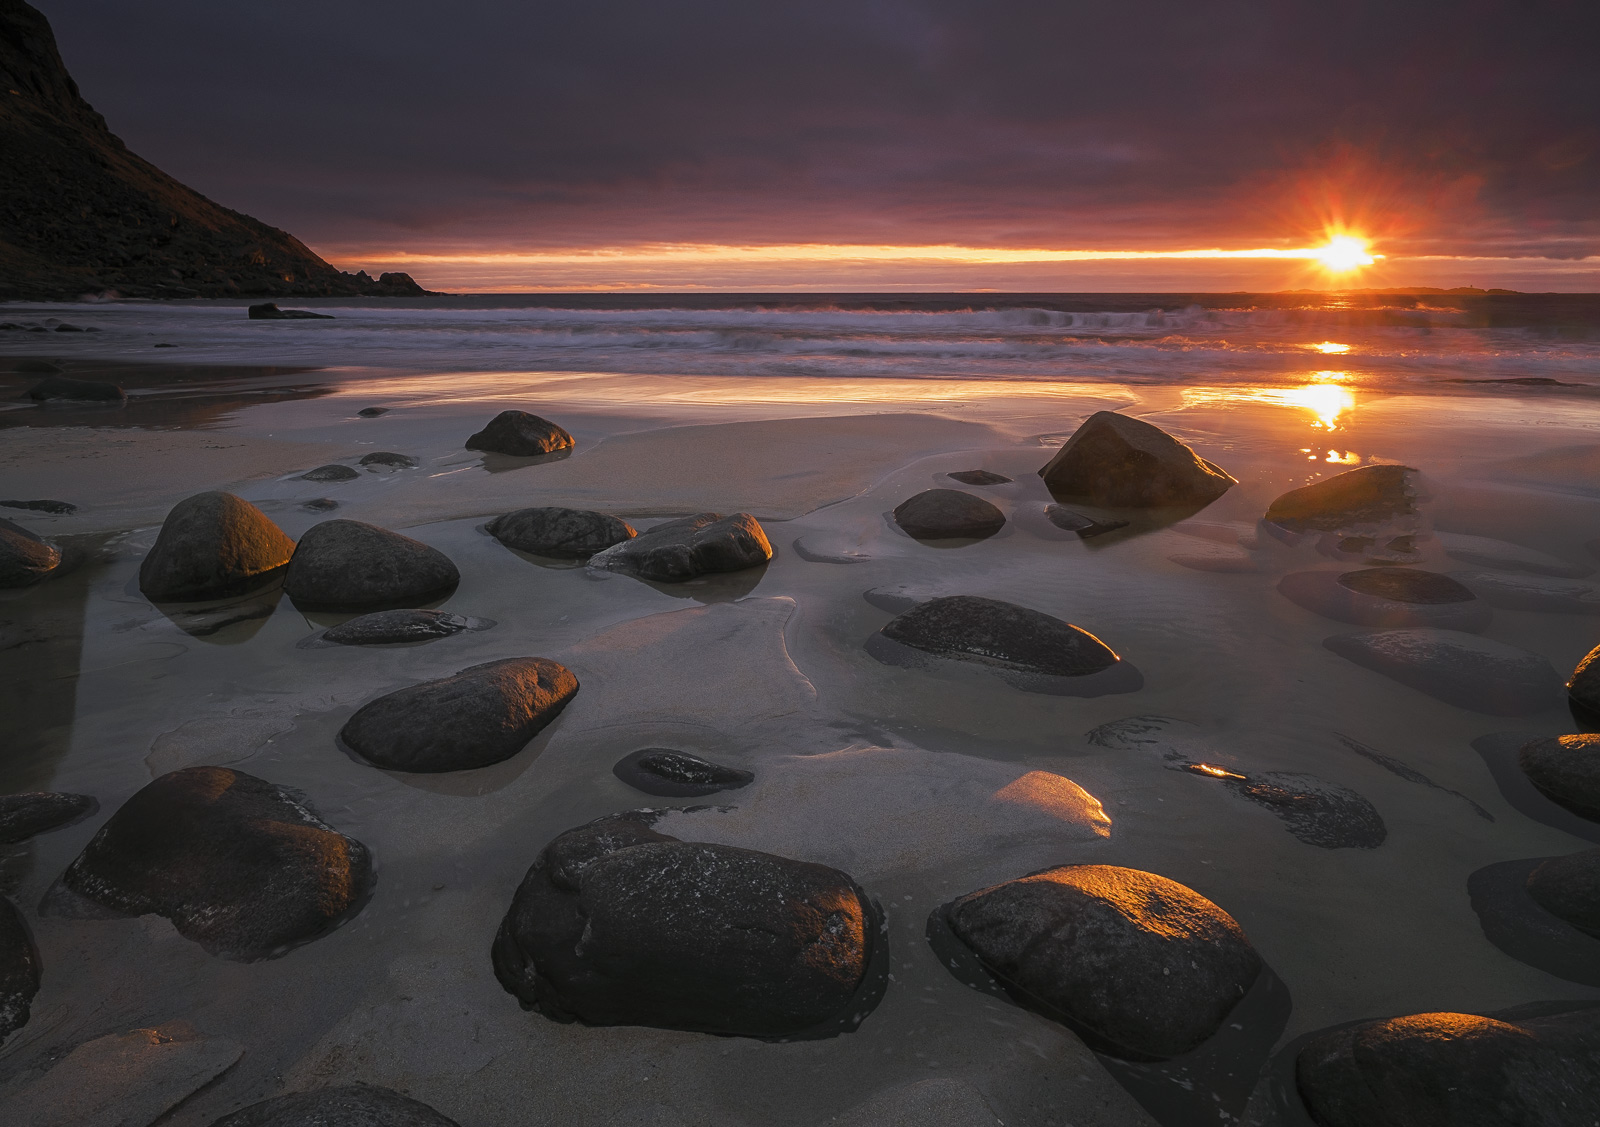 The sun sets in a blaze of powerful and blinding orange light illuminating the wet black rocks and turning them into nuggets...